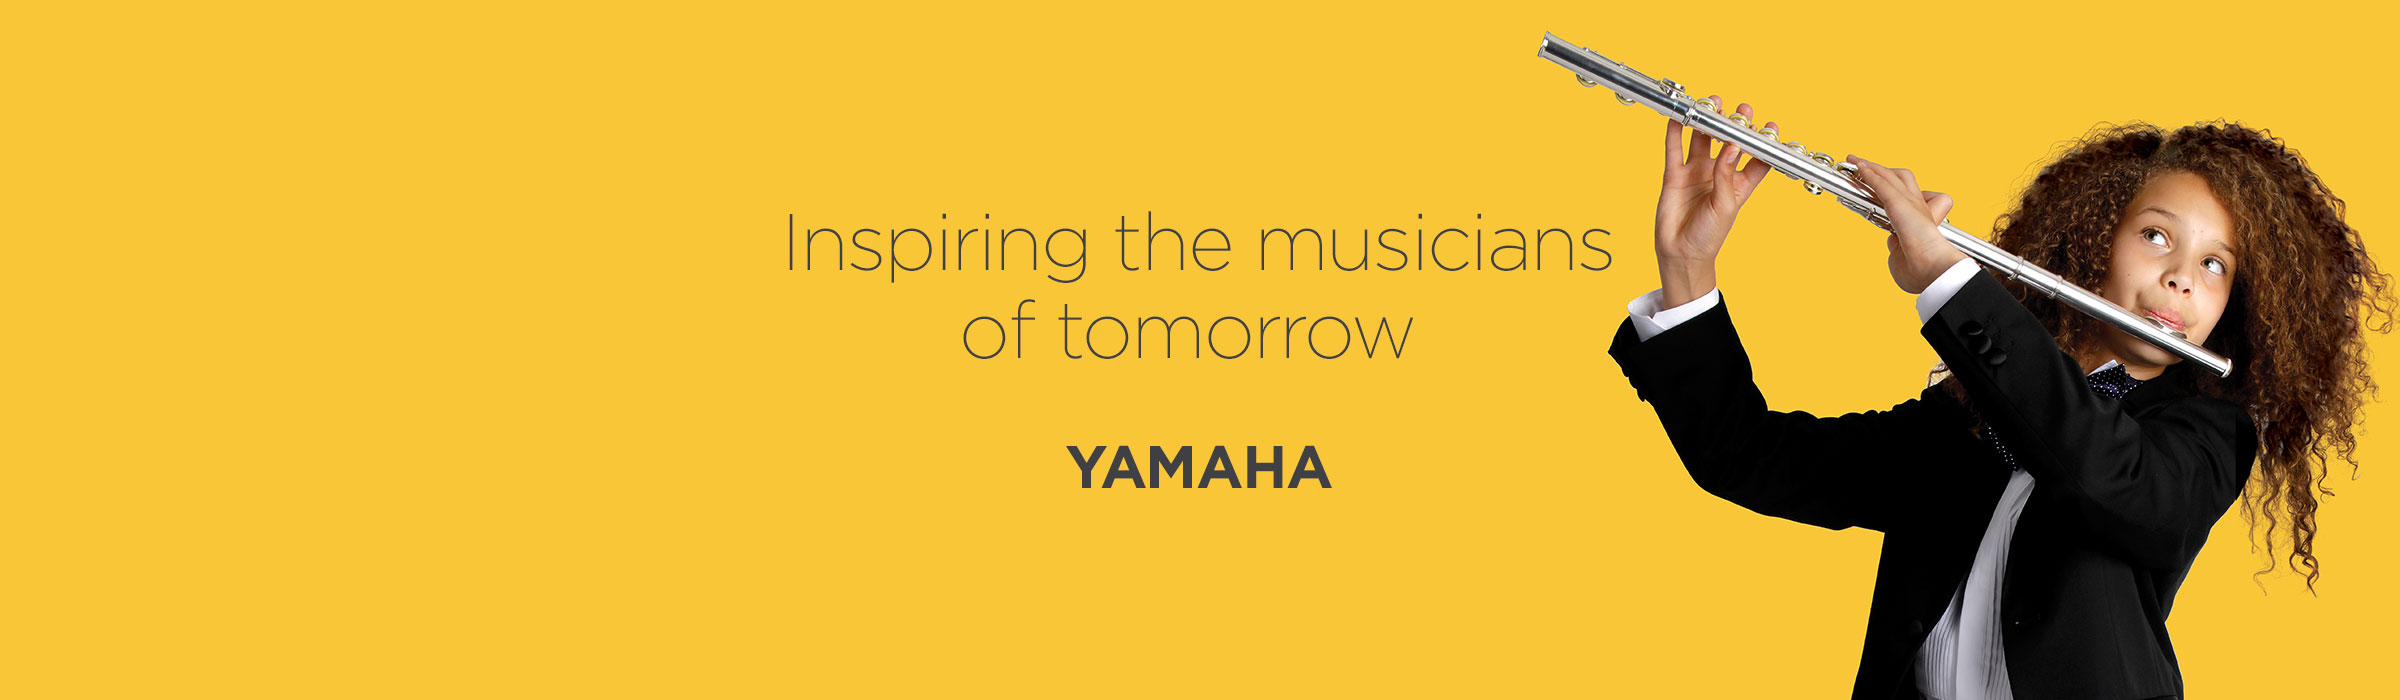 Yamaha – Inspiring the musicians of tomorrow